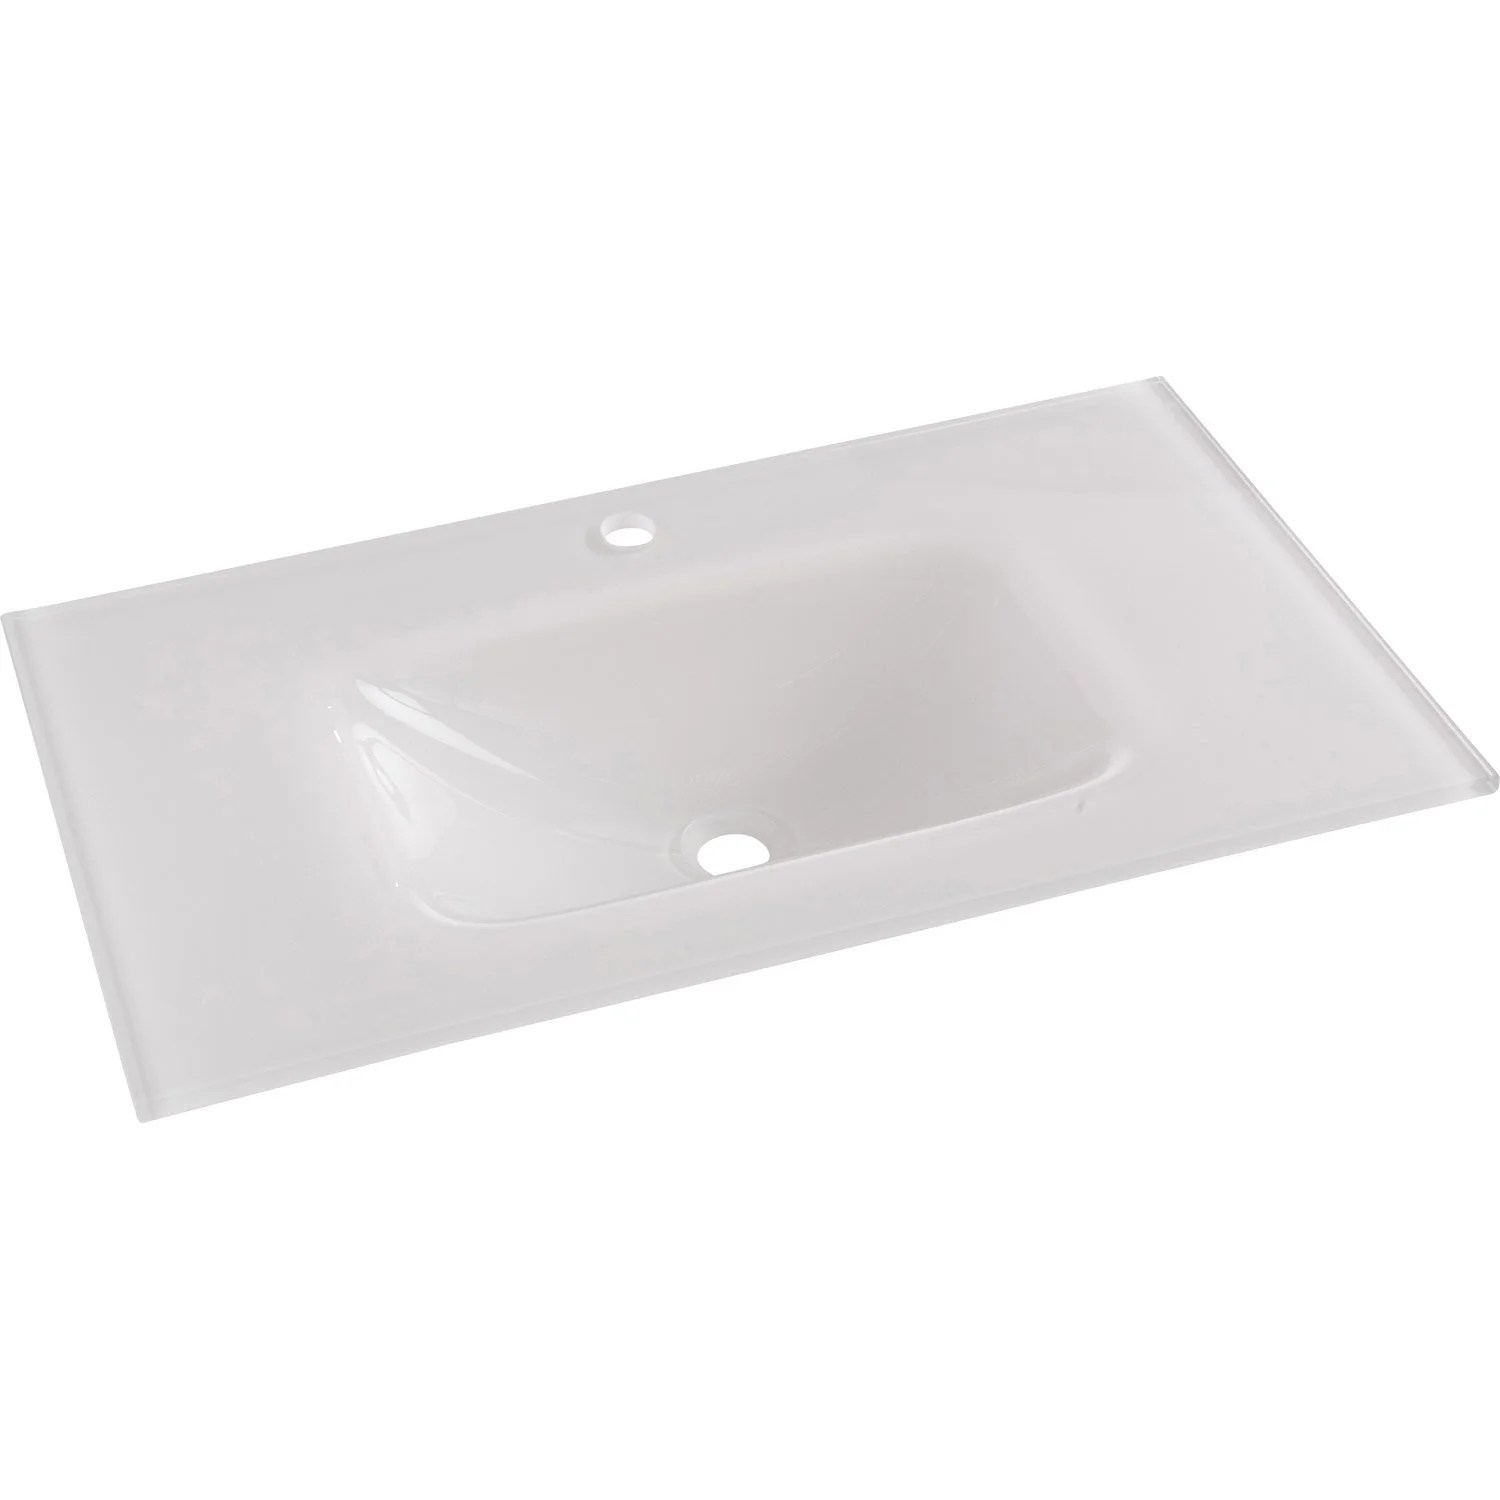 Meubles vasques leroy merlin meuble salle de bain double for Leroy merlin vasque